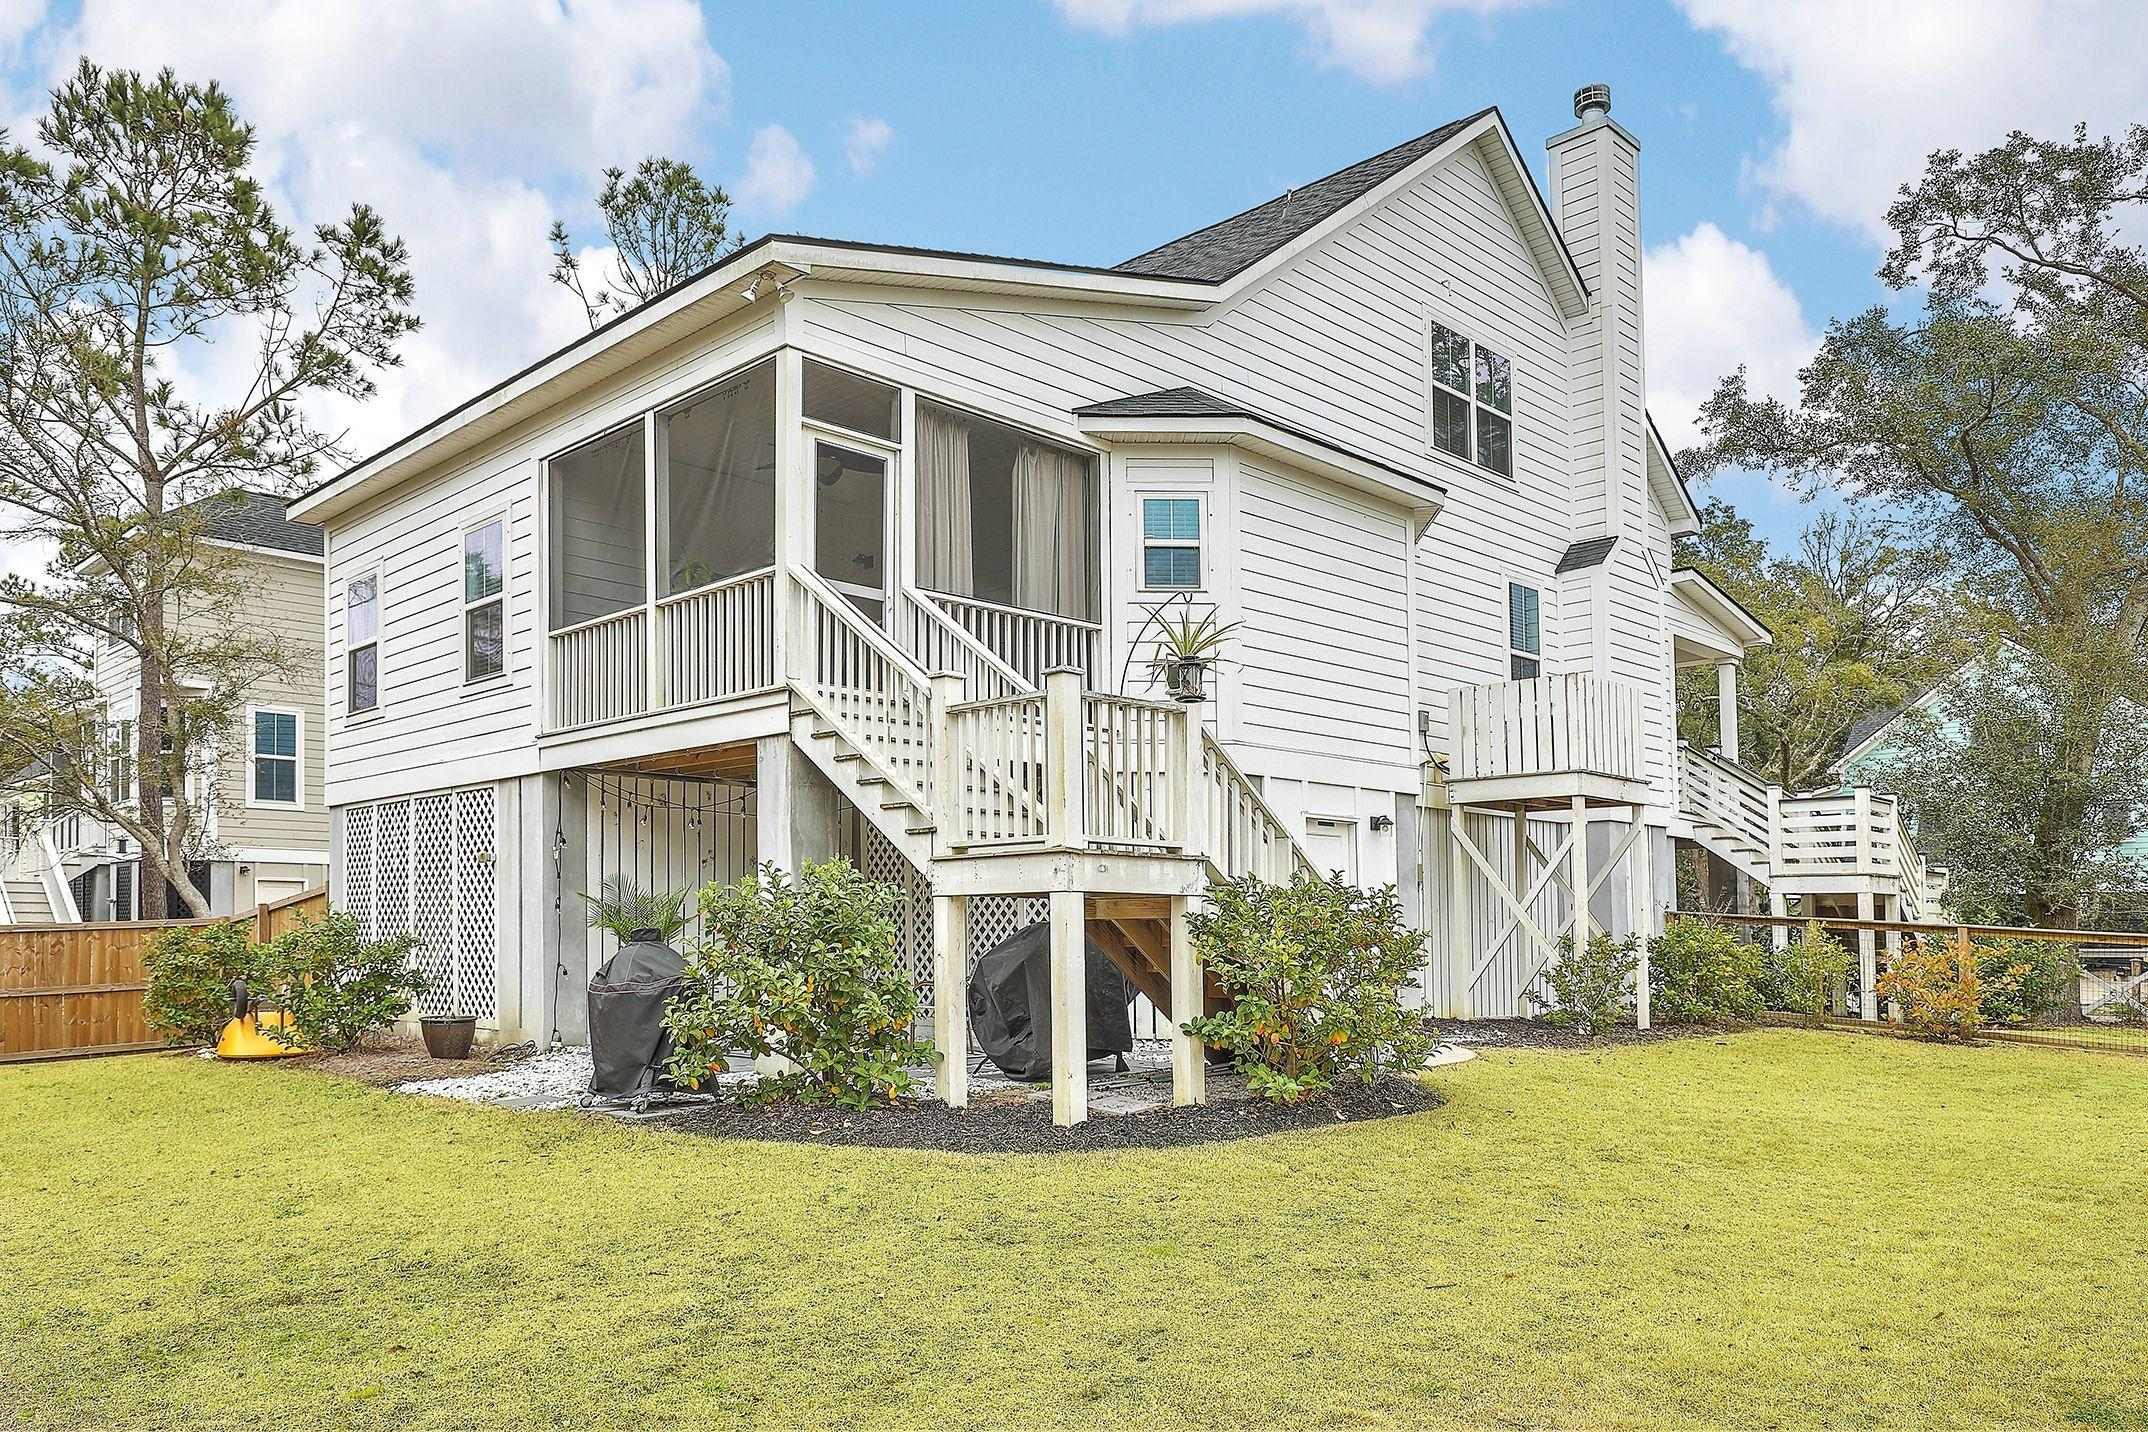 Cottages on Periwinkle Homes For Sale - 1634 Periwinkle, Mount Pleasant, SC - 4